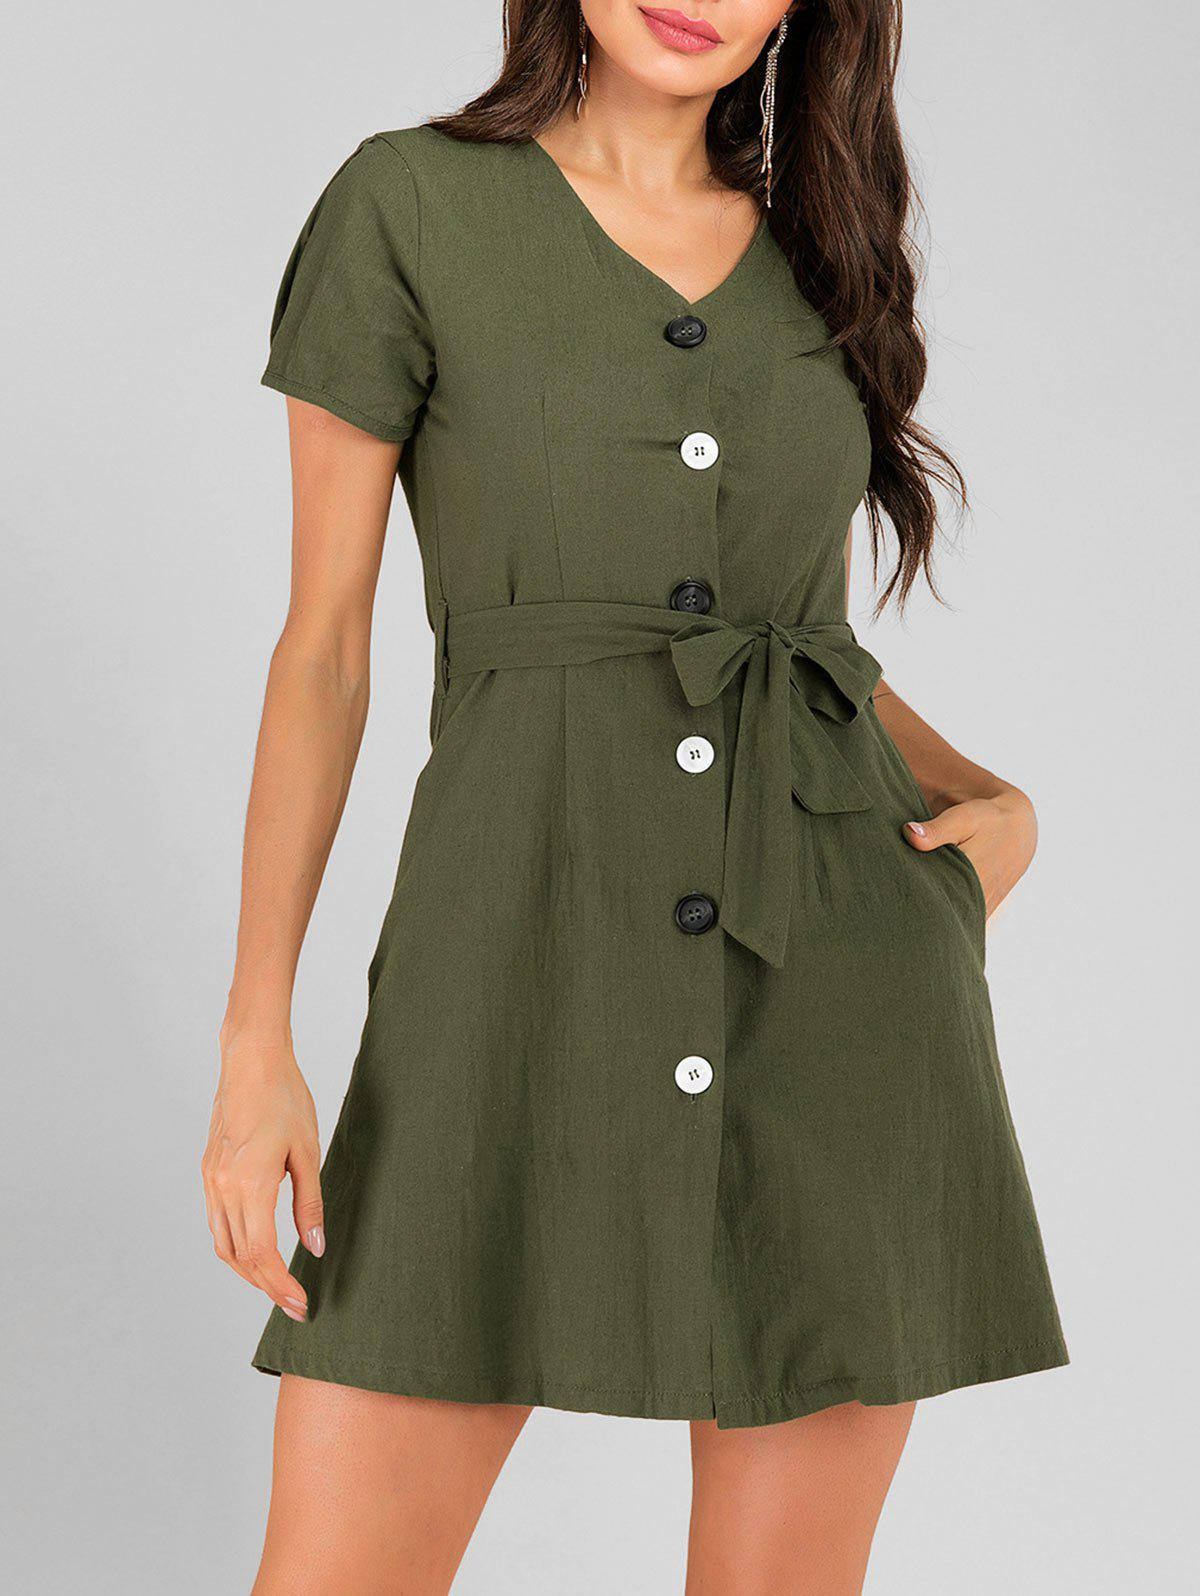 Hot Button Up Pocket Belted Mini Dress